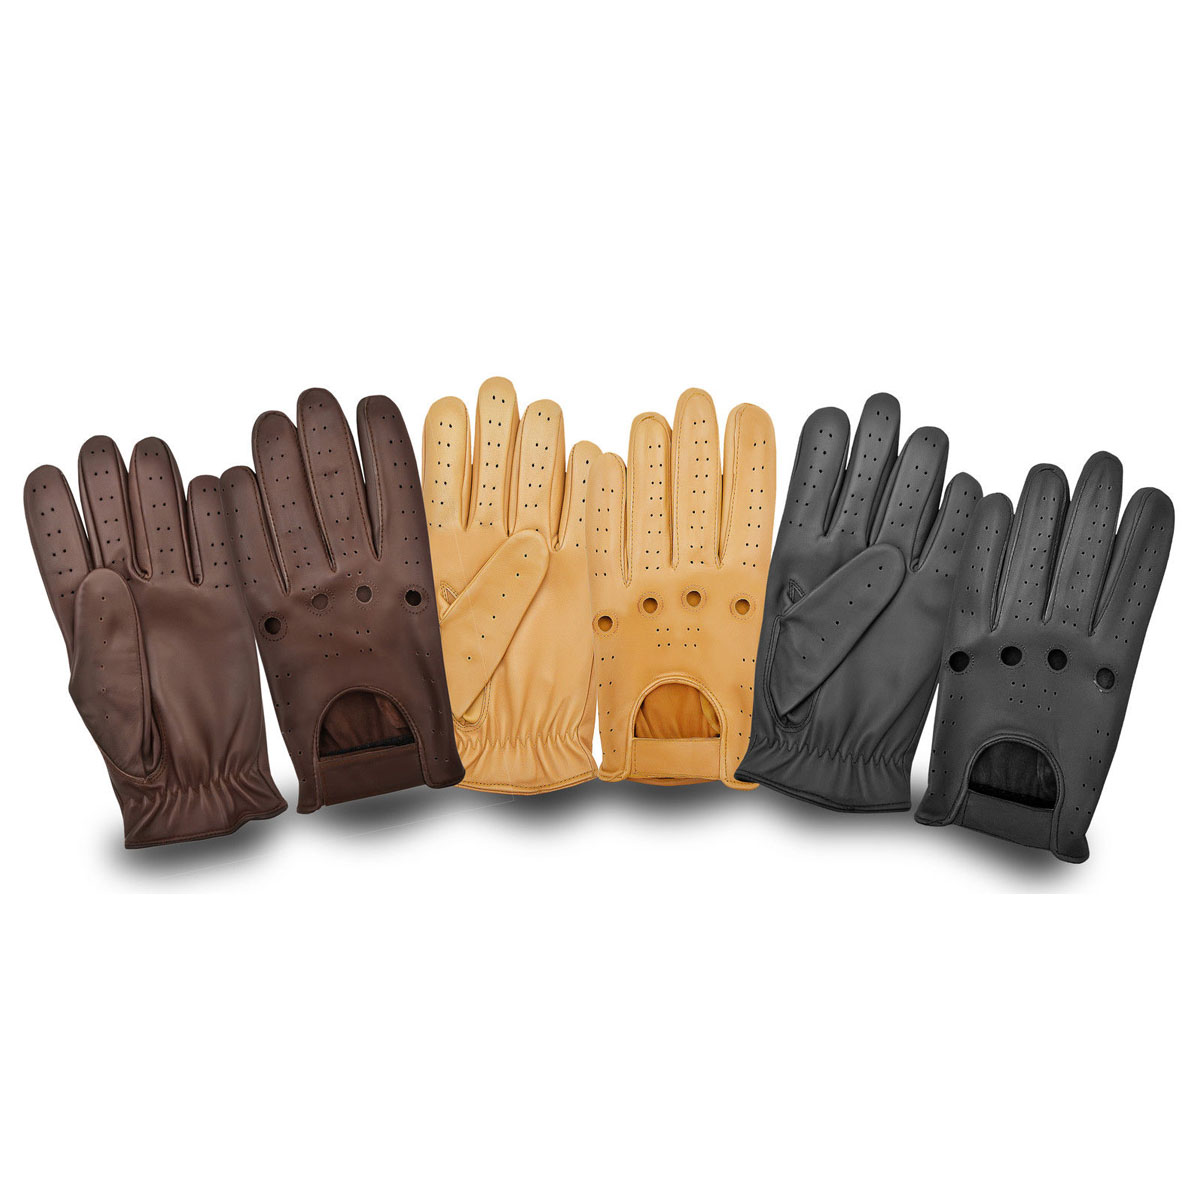 Dam Leather Weight Lifting Gym Gloves Real Leather Women S: RETRO STYLE LAMBSKIN LEATHER DRIVING GLOVES SKIN FIT